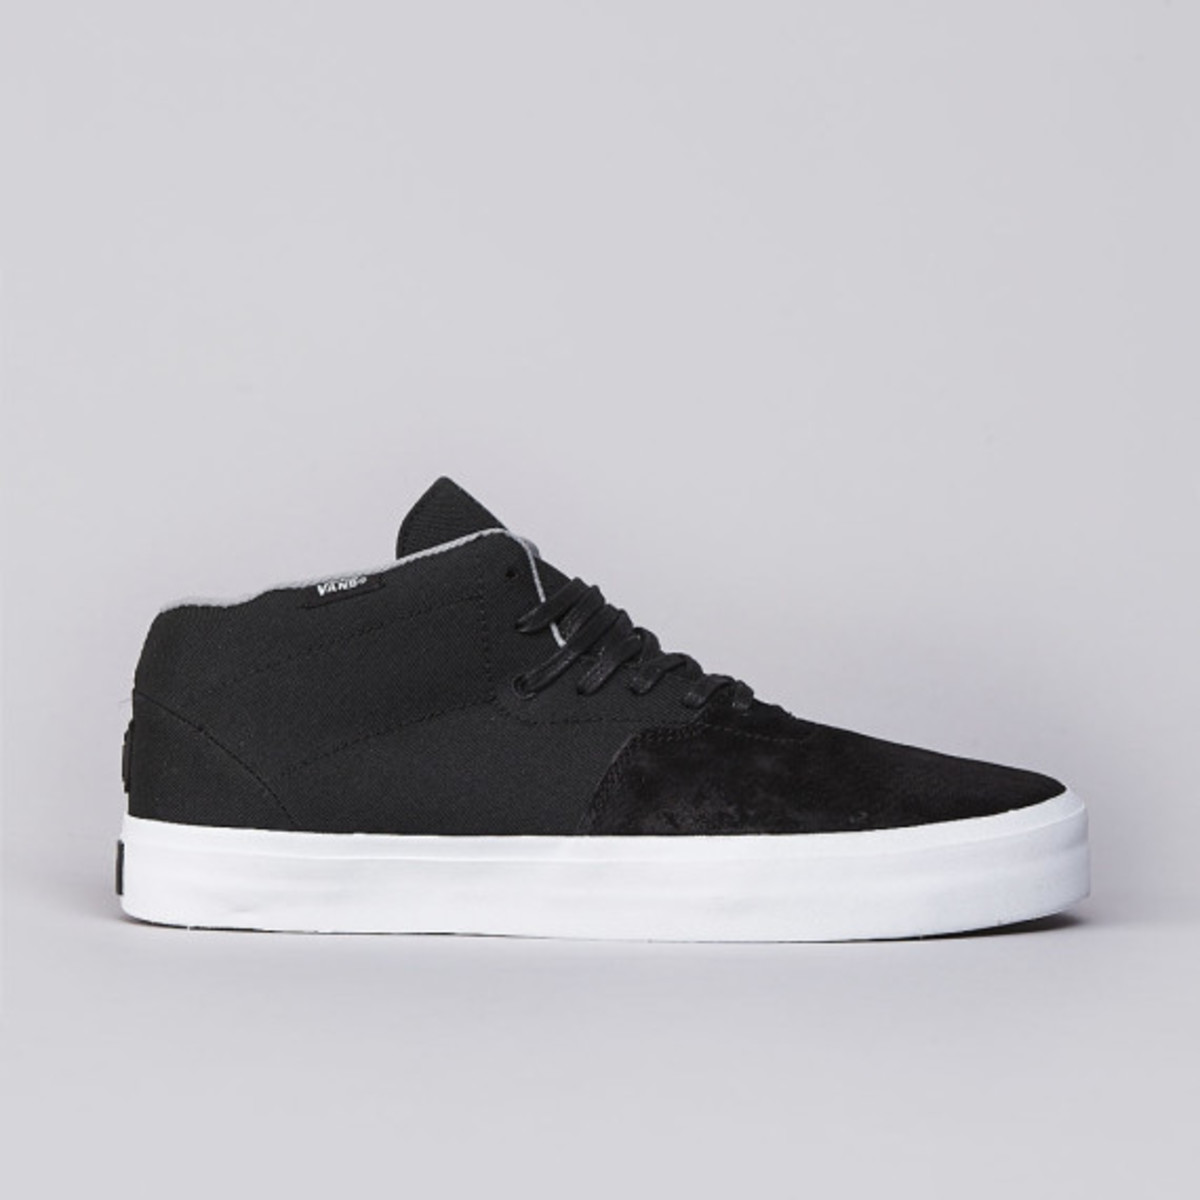 "VANS Syndicate Cab Lite ""S"" - June 2013 Releases - 12"